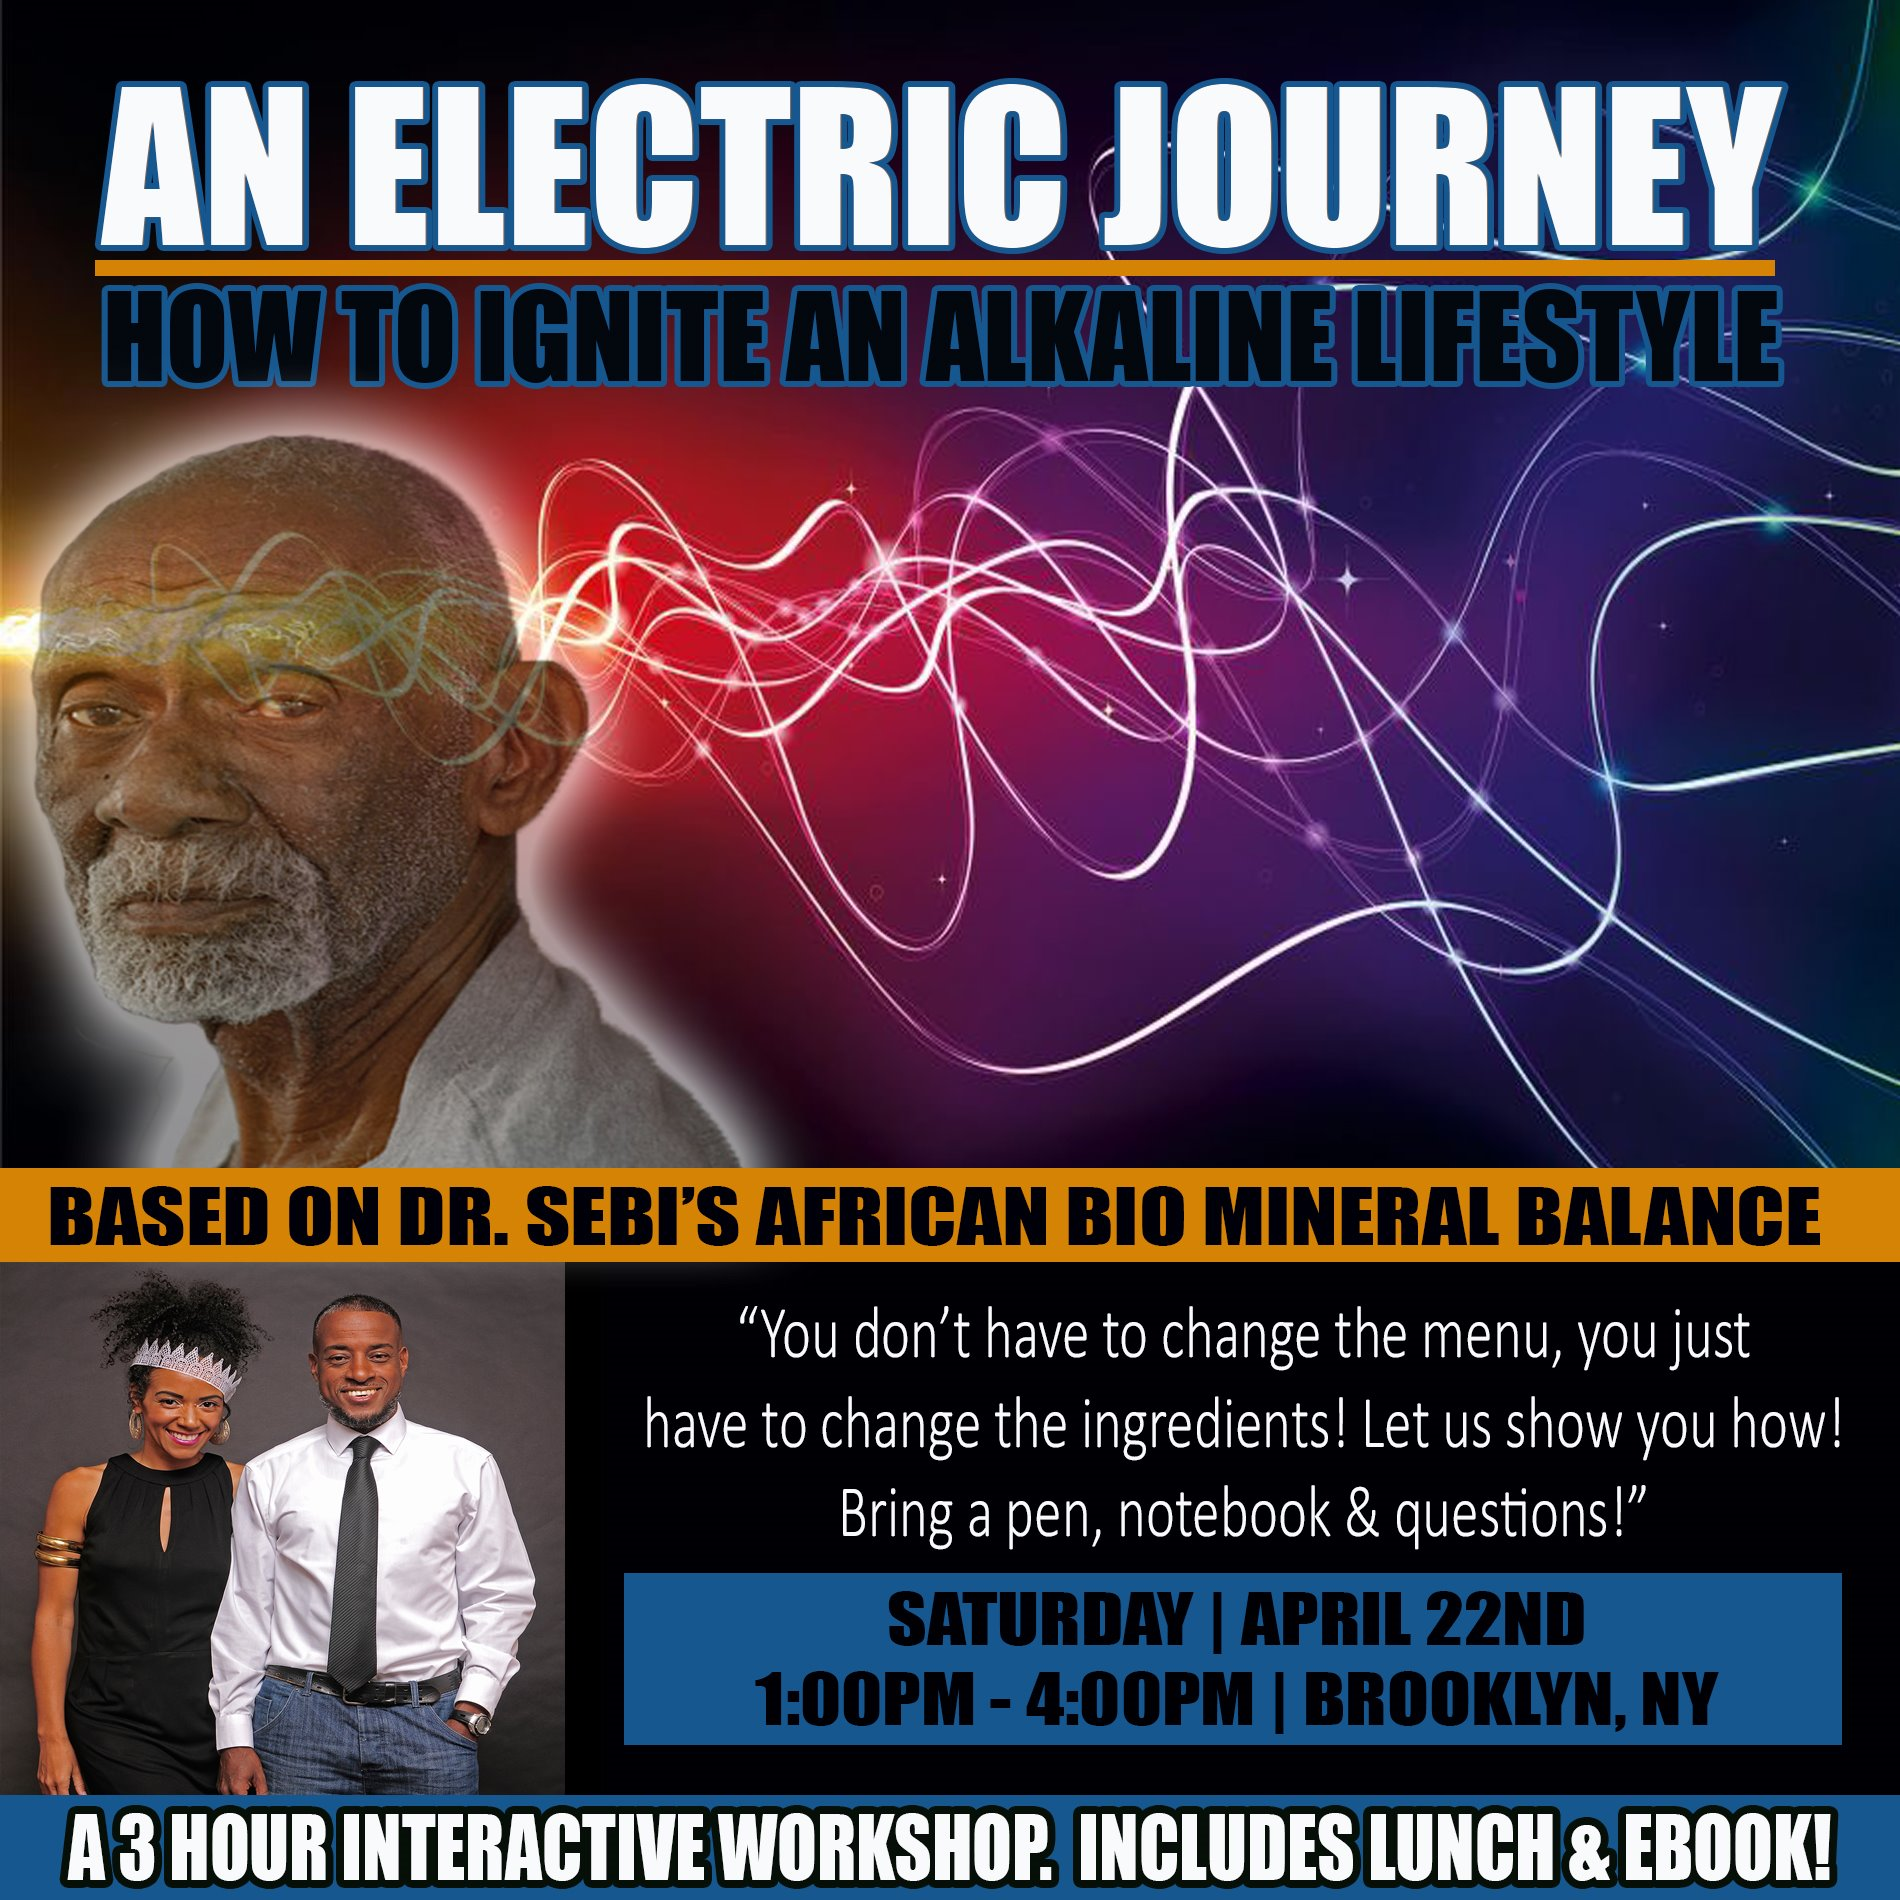 AN ELECTRIC JOURNEY WORKSHOP| APRIL 22ND